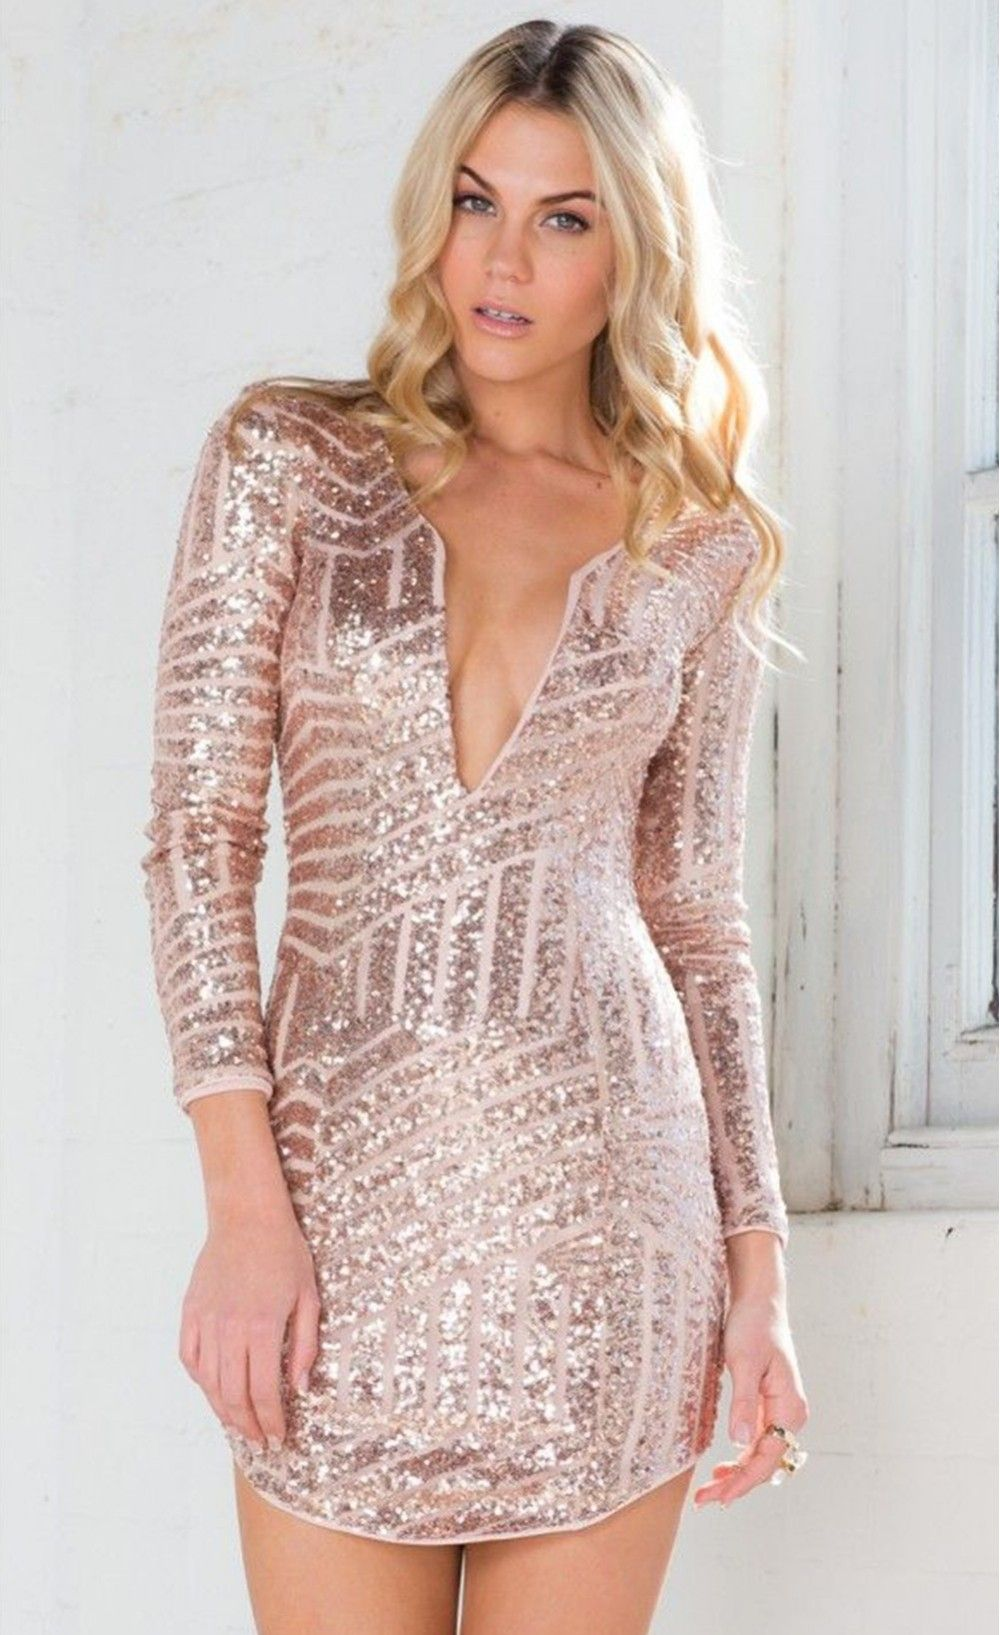 942ab67dedf6 Rose Gold Long Sleeve Sequin Mini Dress! Love the deep plunge ...